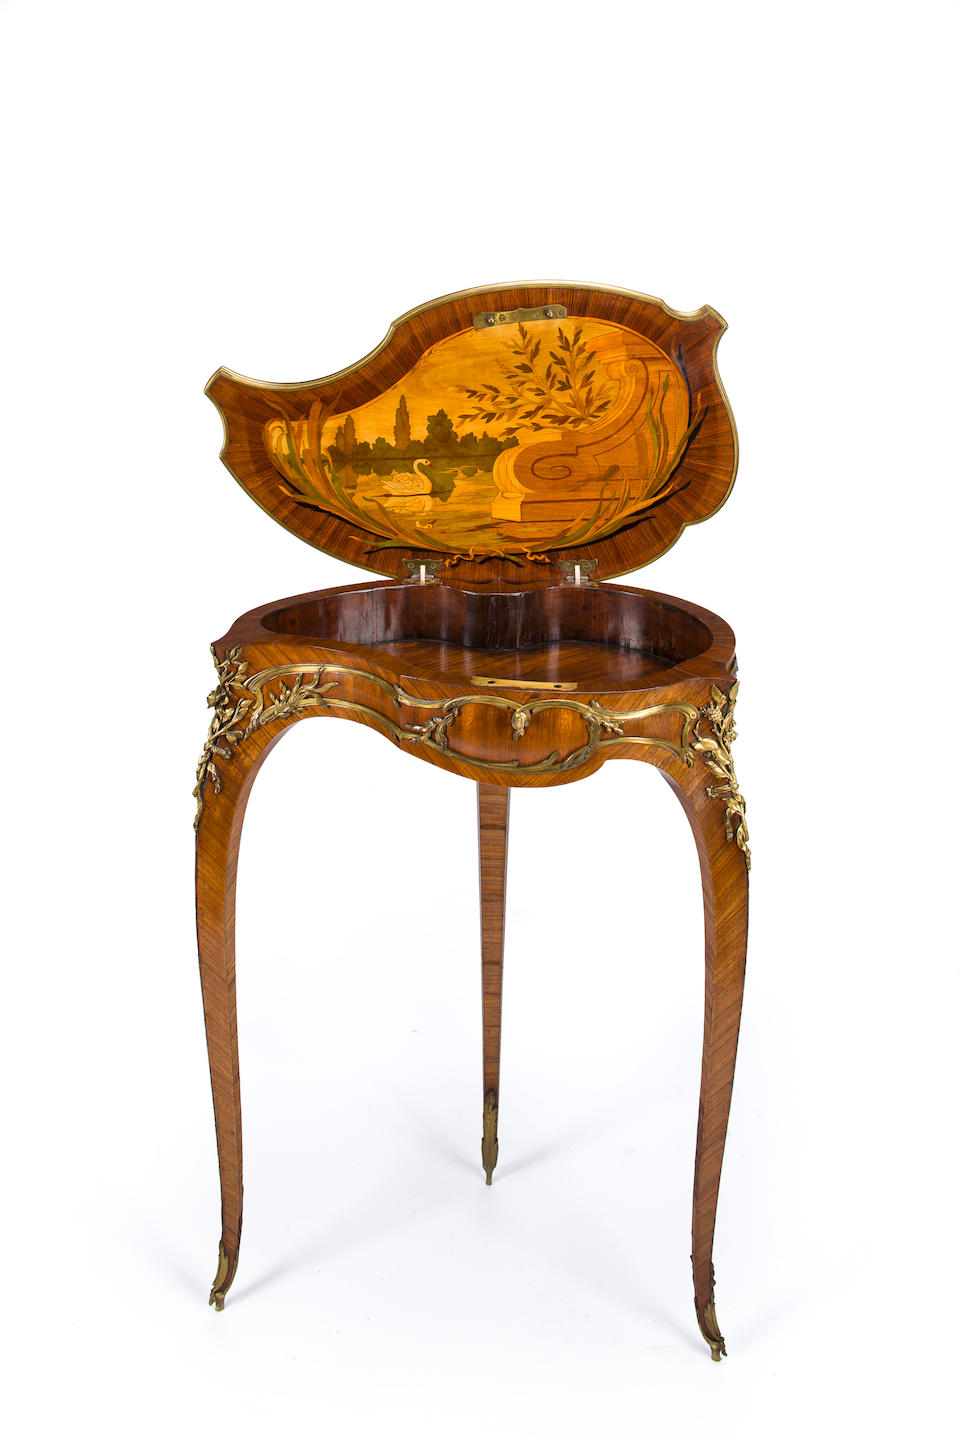 """A Louis XV style gilt bronze mounted marquetry table à ouvrage """"coquille"""" François Linke, index number 554 circa 1900"""